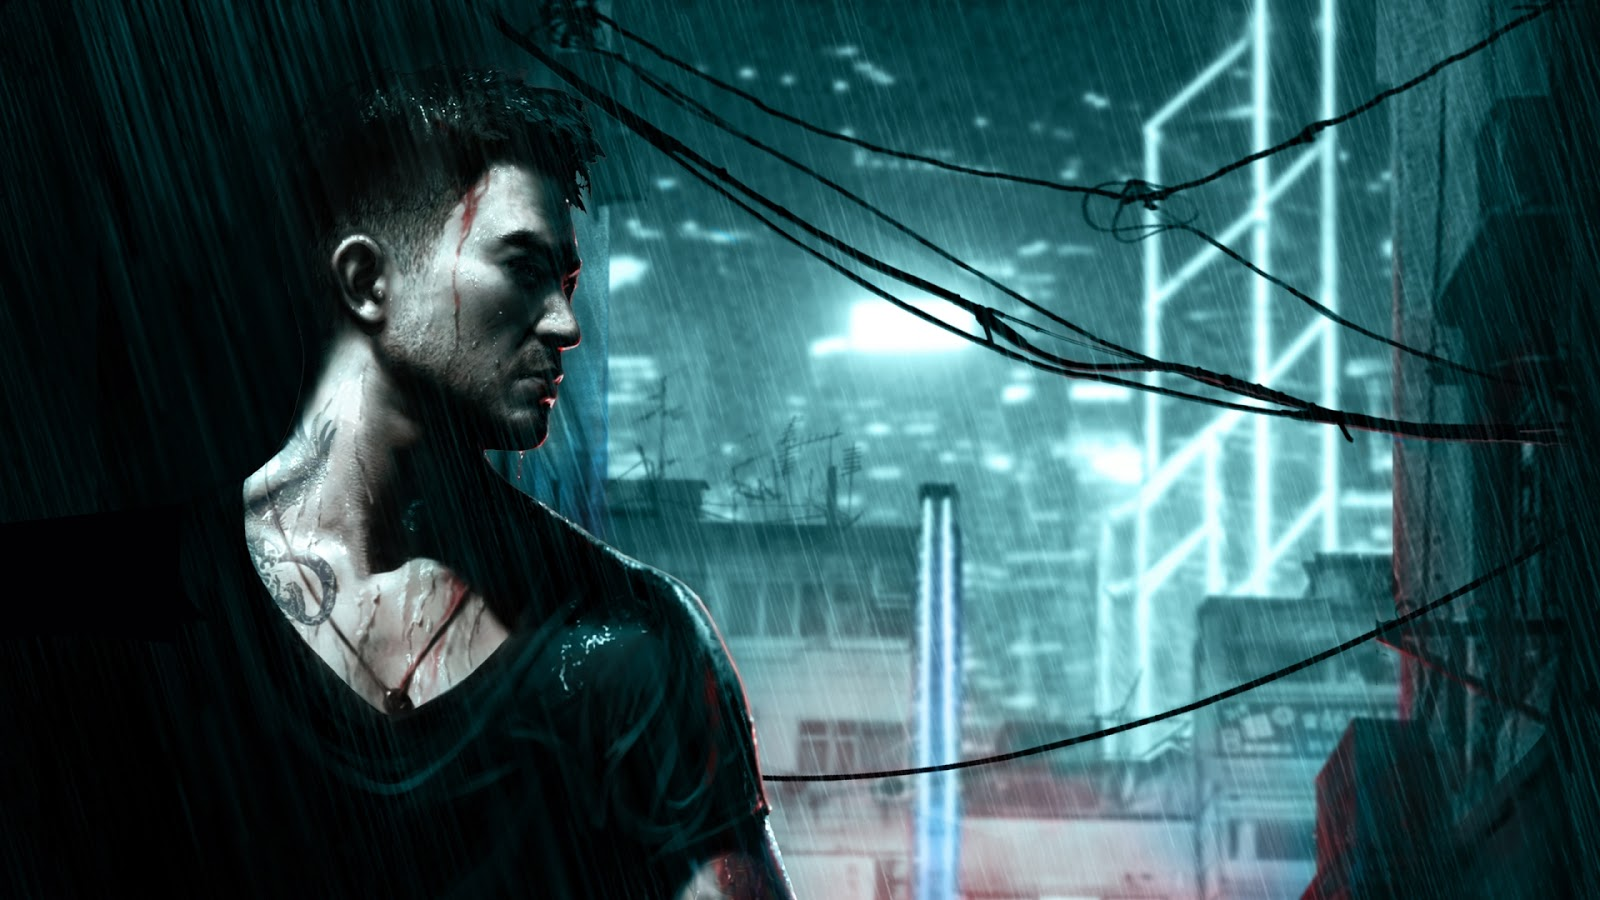 Sleeping Dogs Game Mystery Wallpaper 1600x900